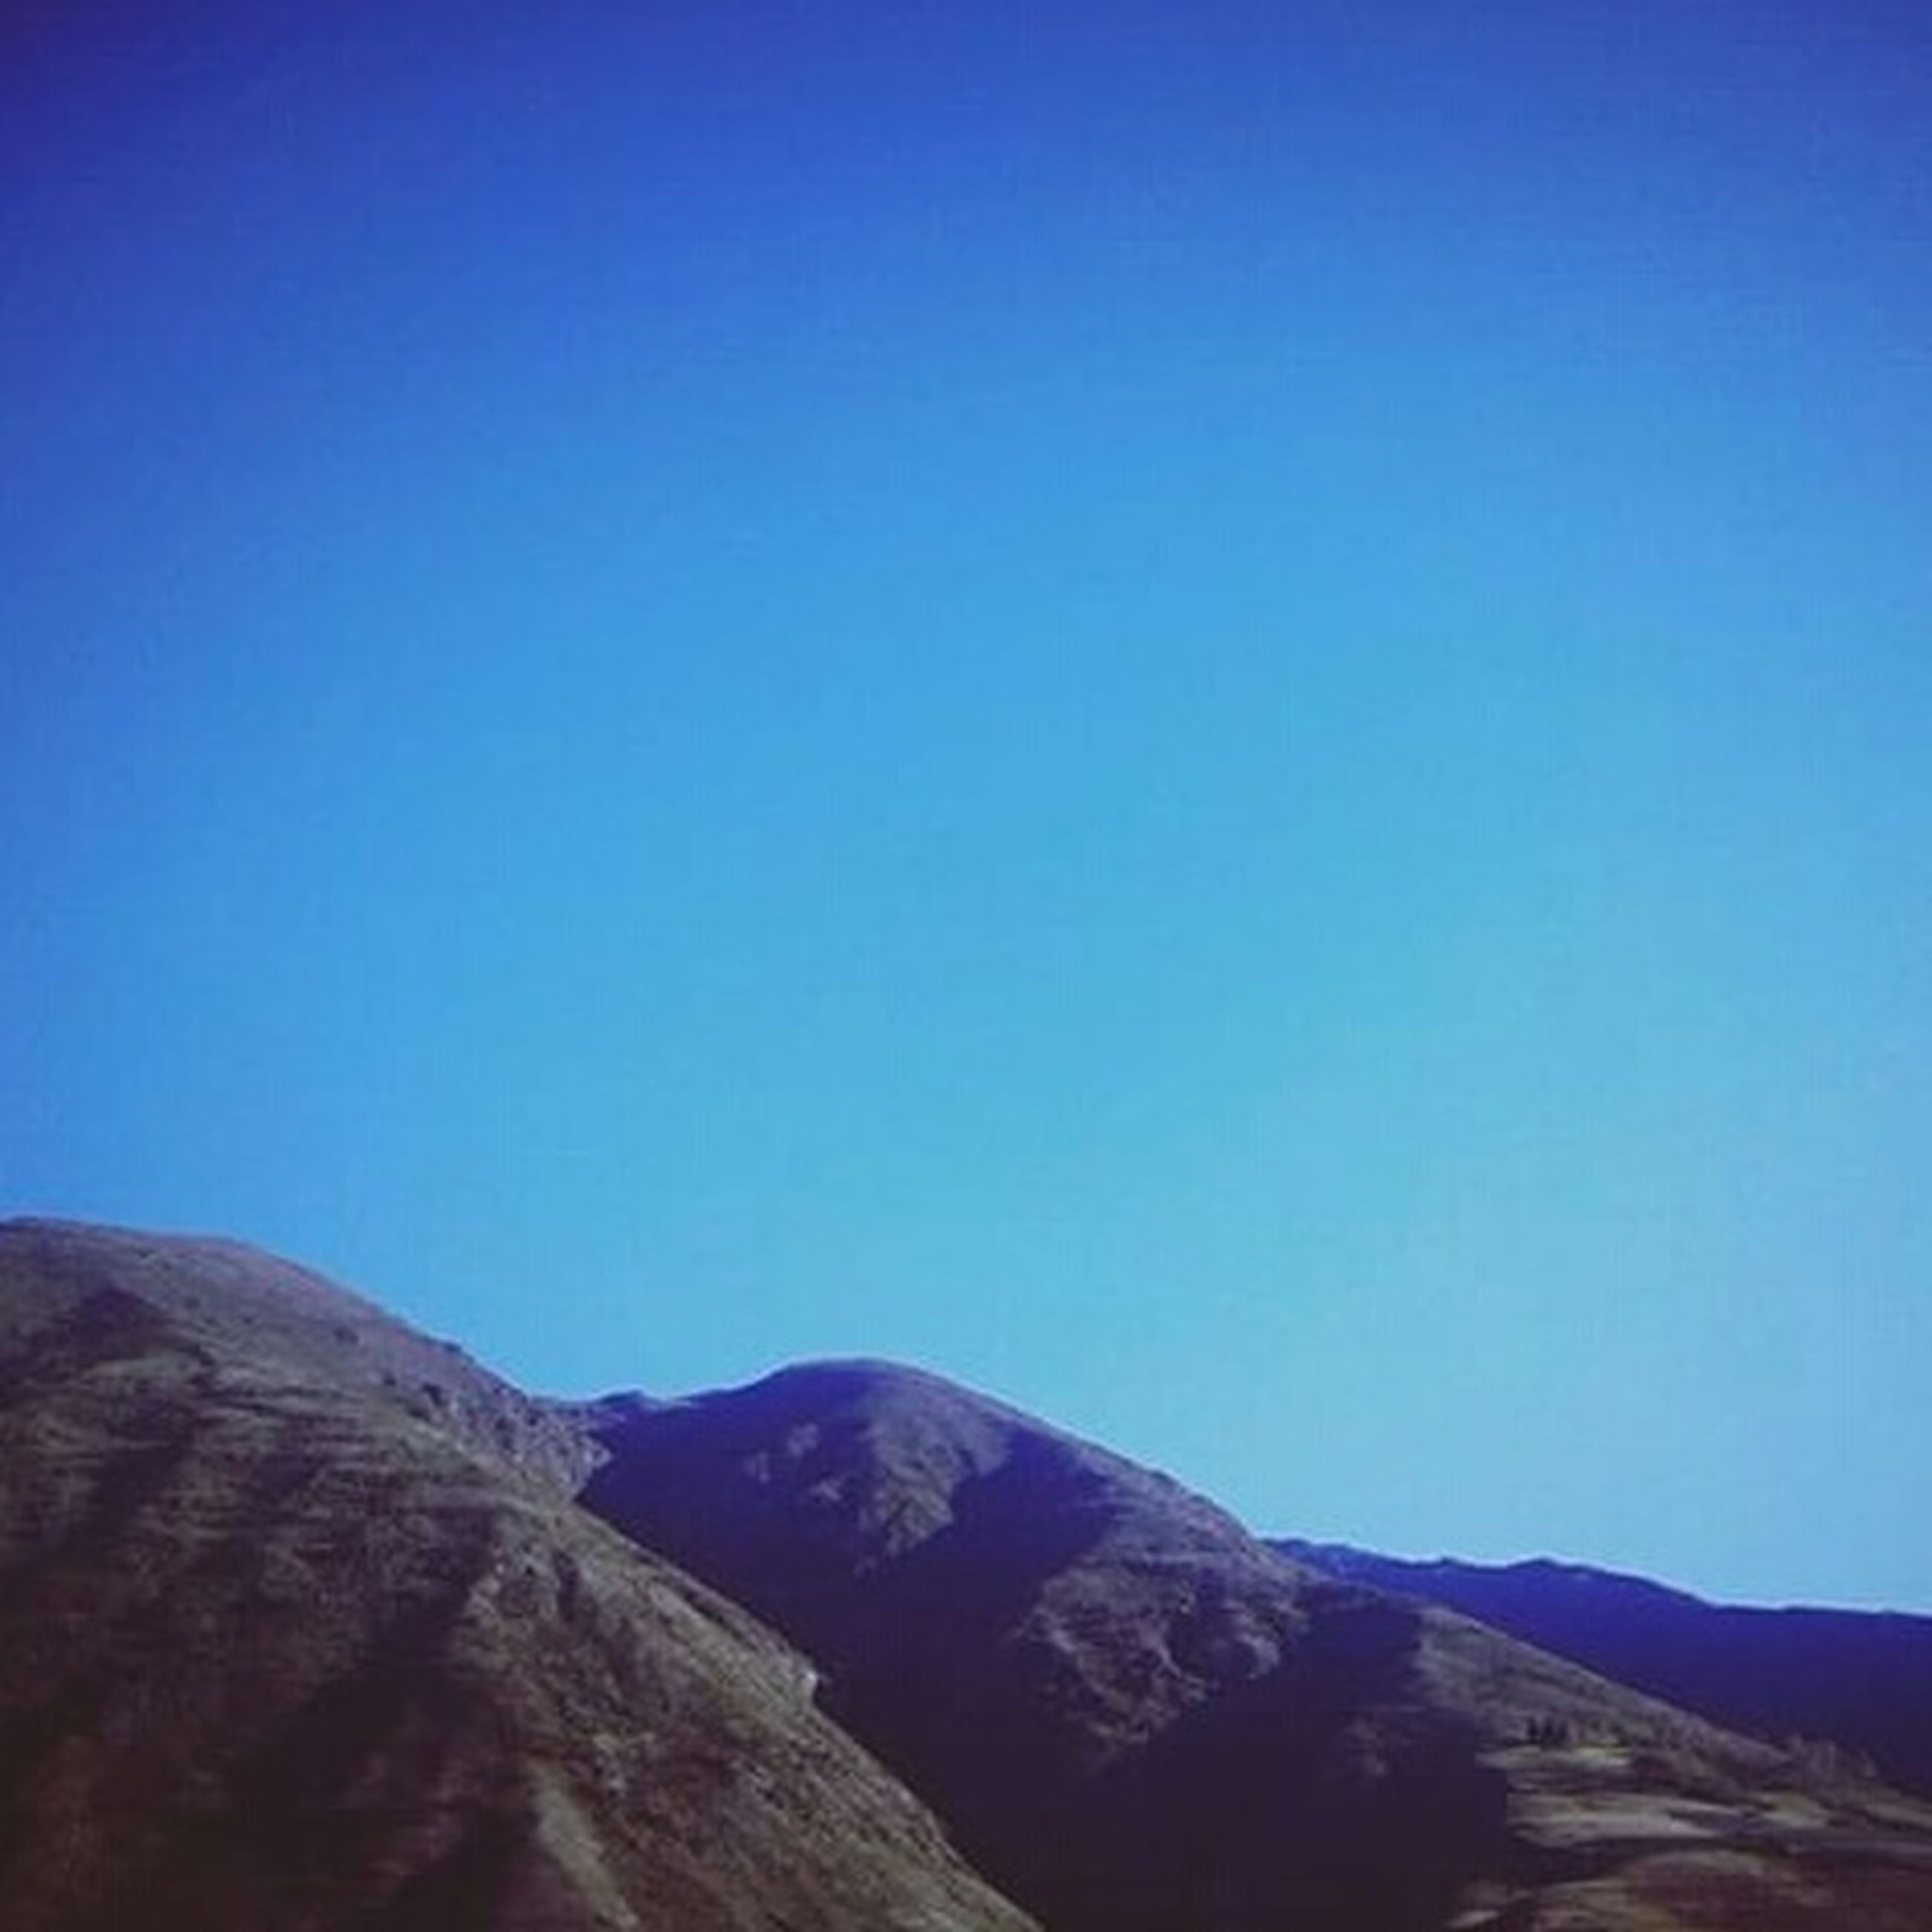 clear sky, copy space, blue, mountain, tranquil scene, tranquility, scenics, mountain range, beauty in nature, nature, landscape, idyllic, non-urban scene, low angle view, outdoors, day, remote, no people, geology, physical geography